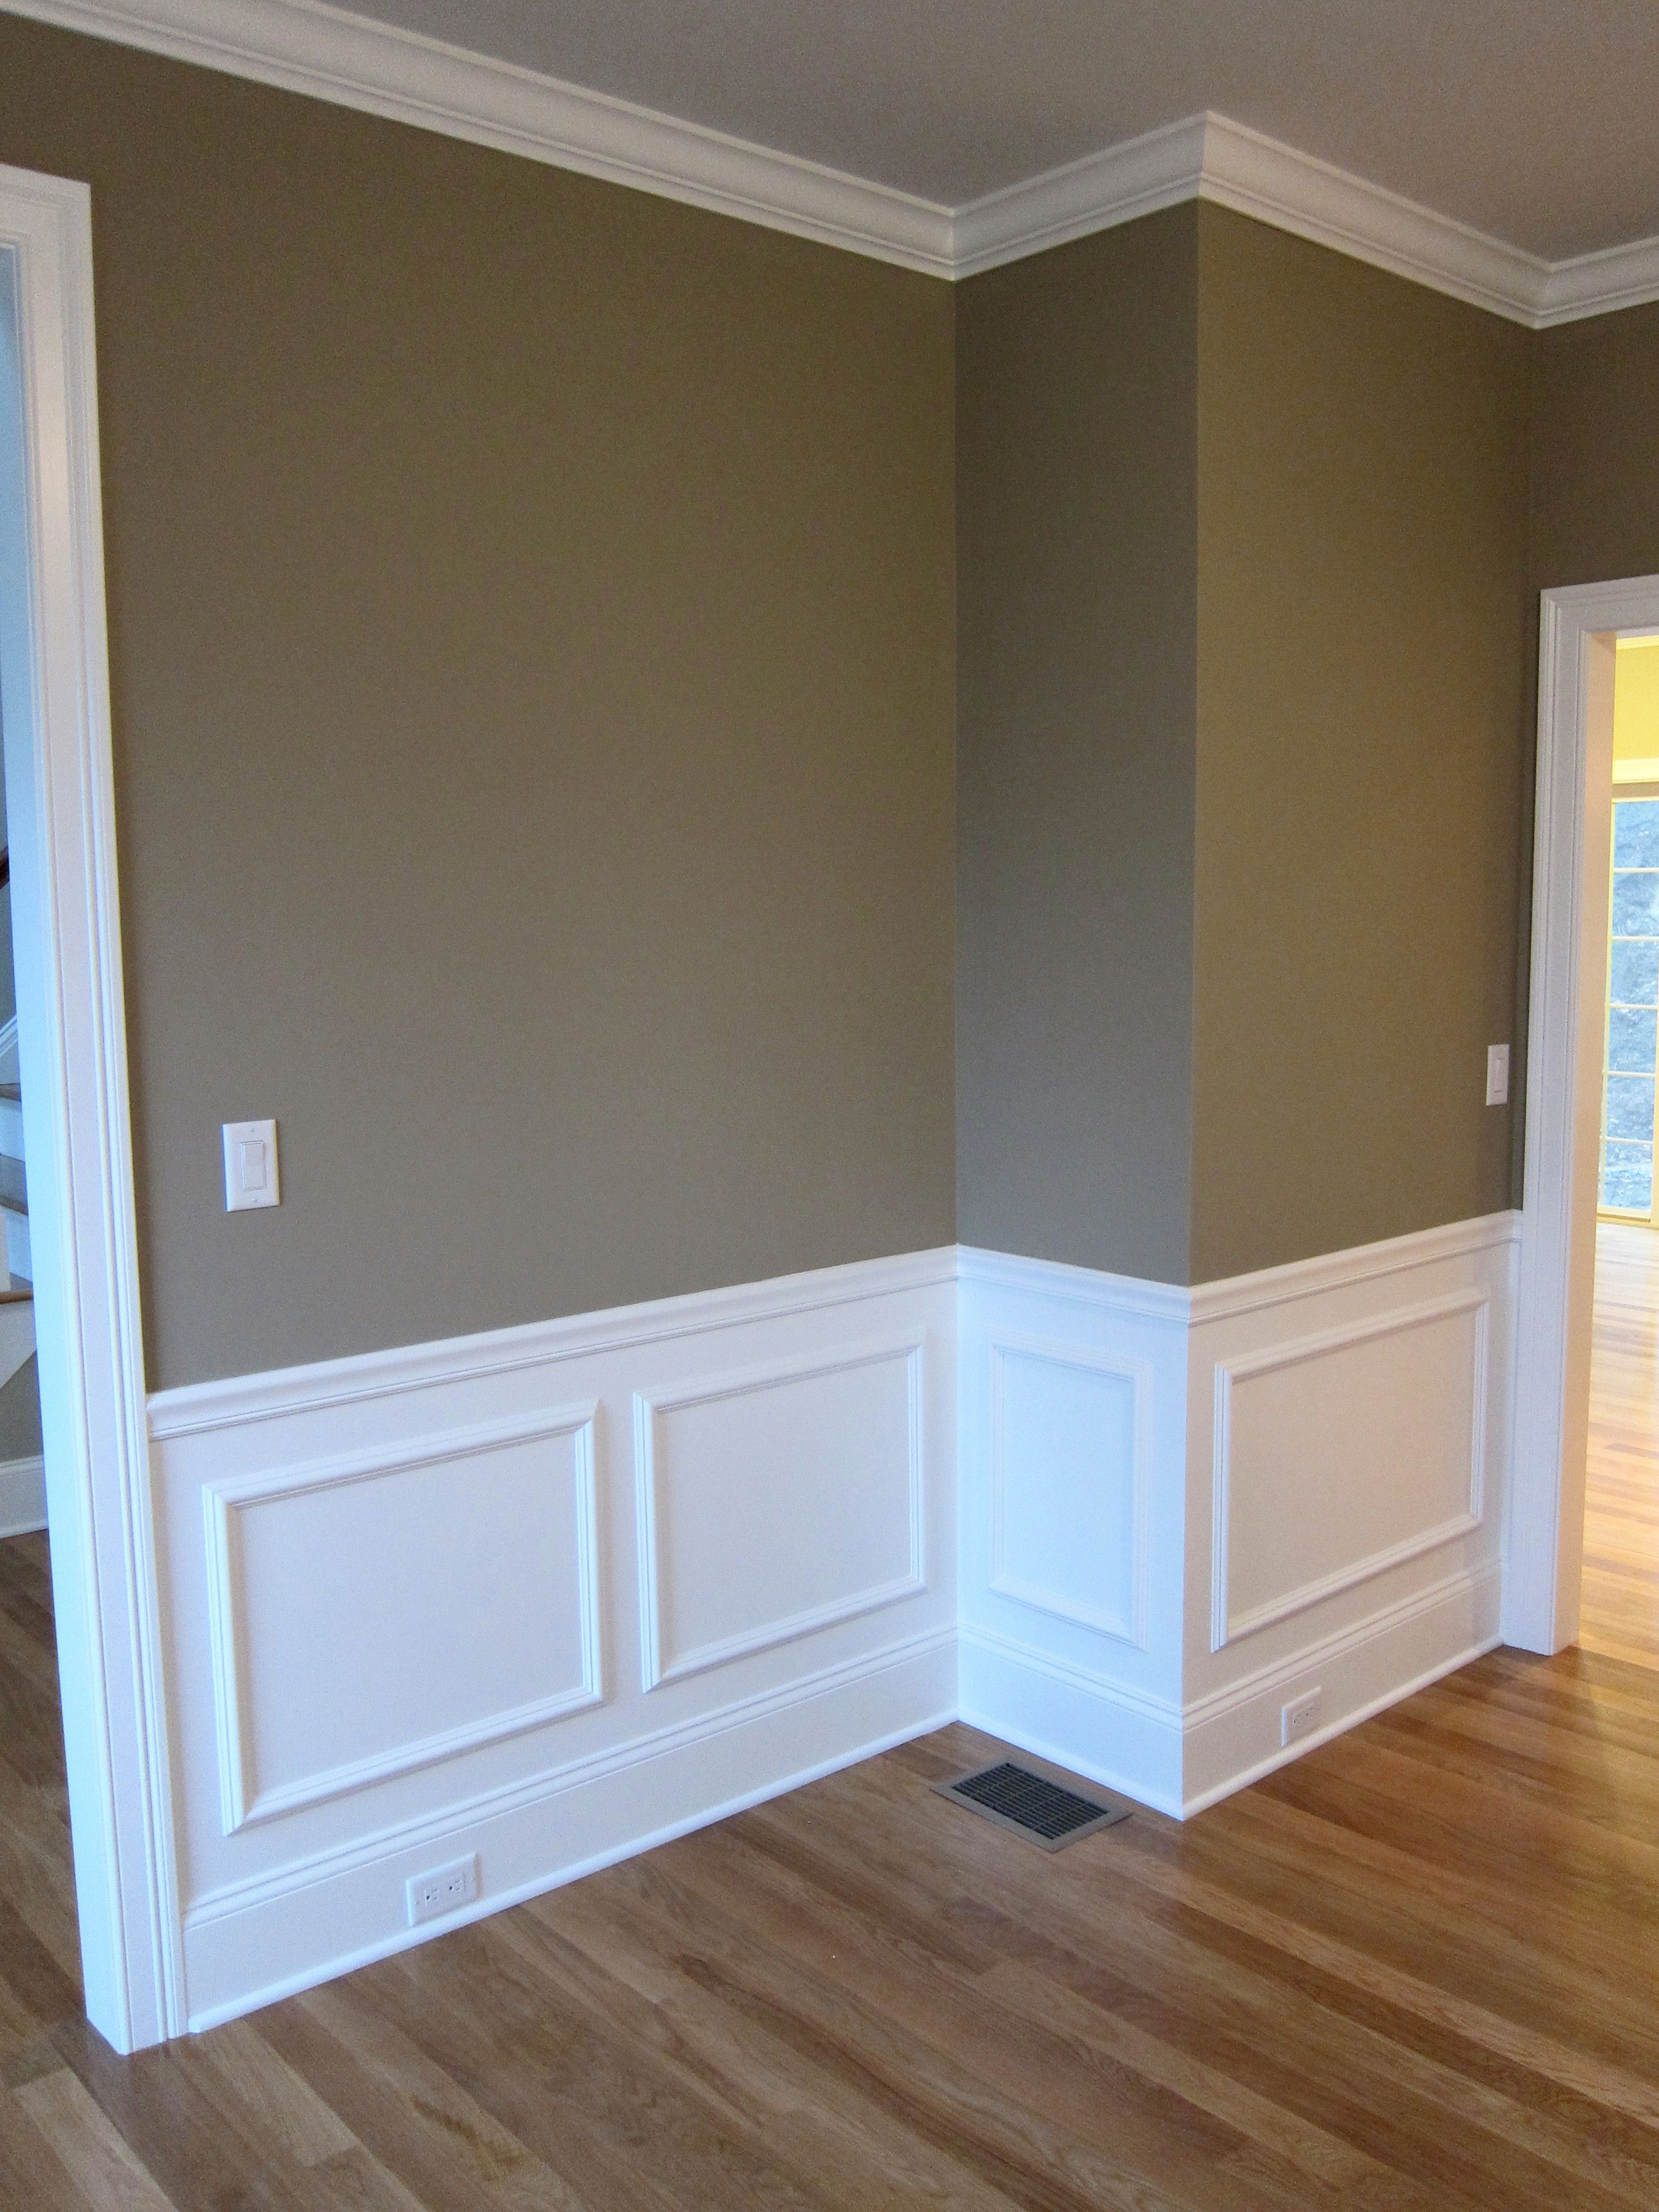 Pin by lordlorre on my home renovation ideas pinterest